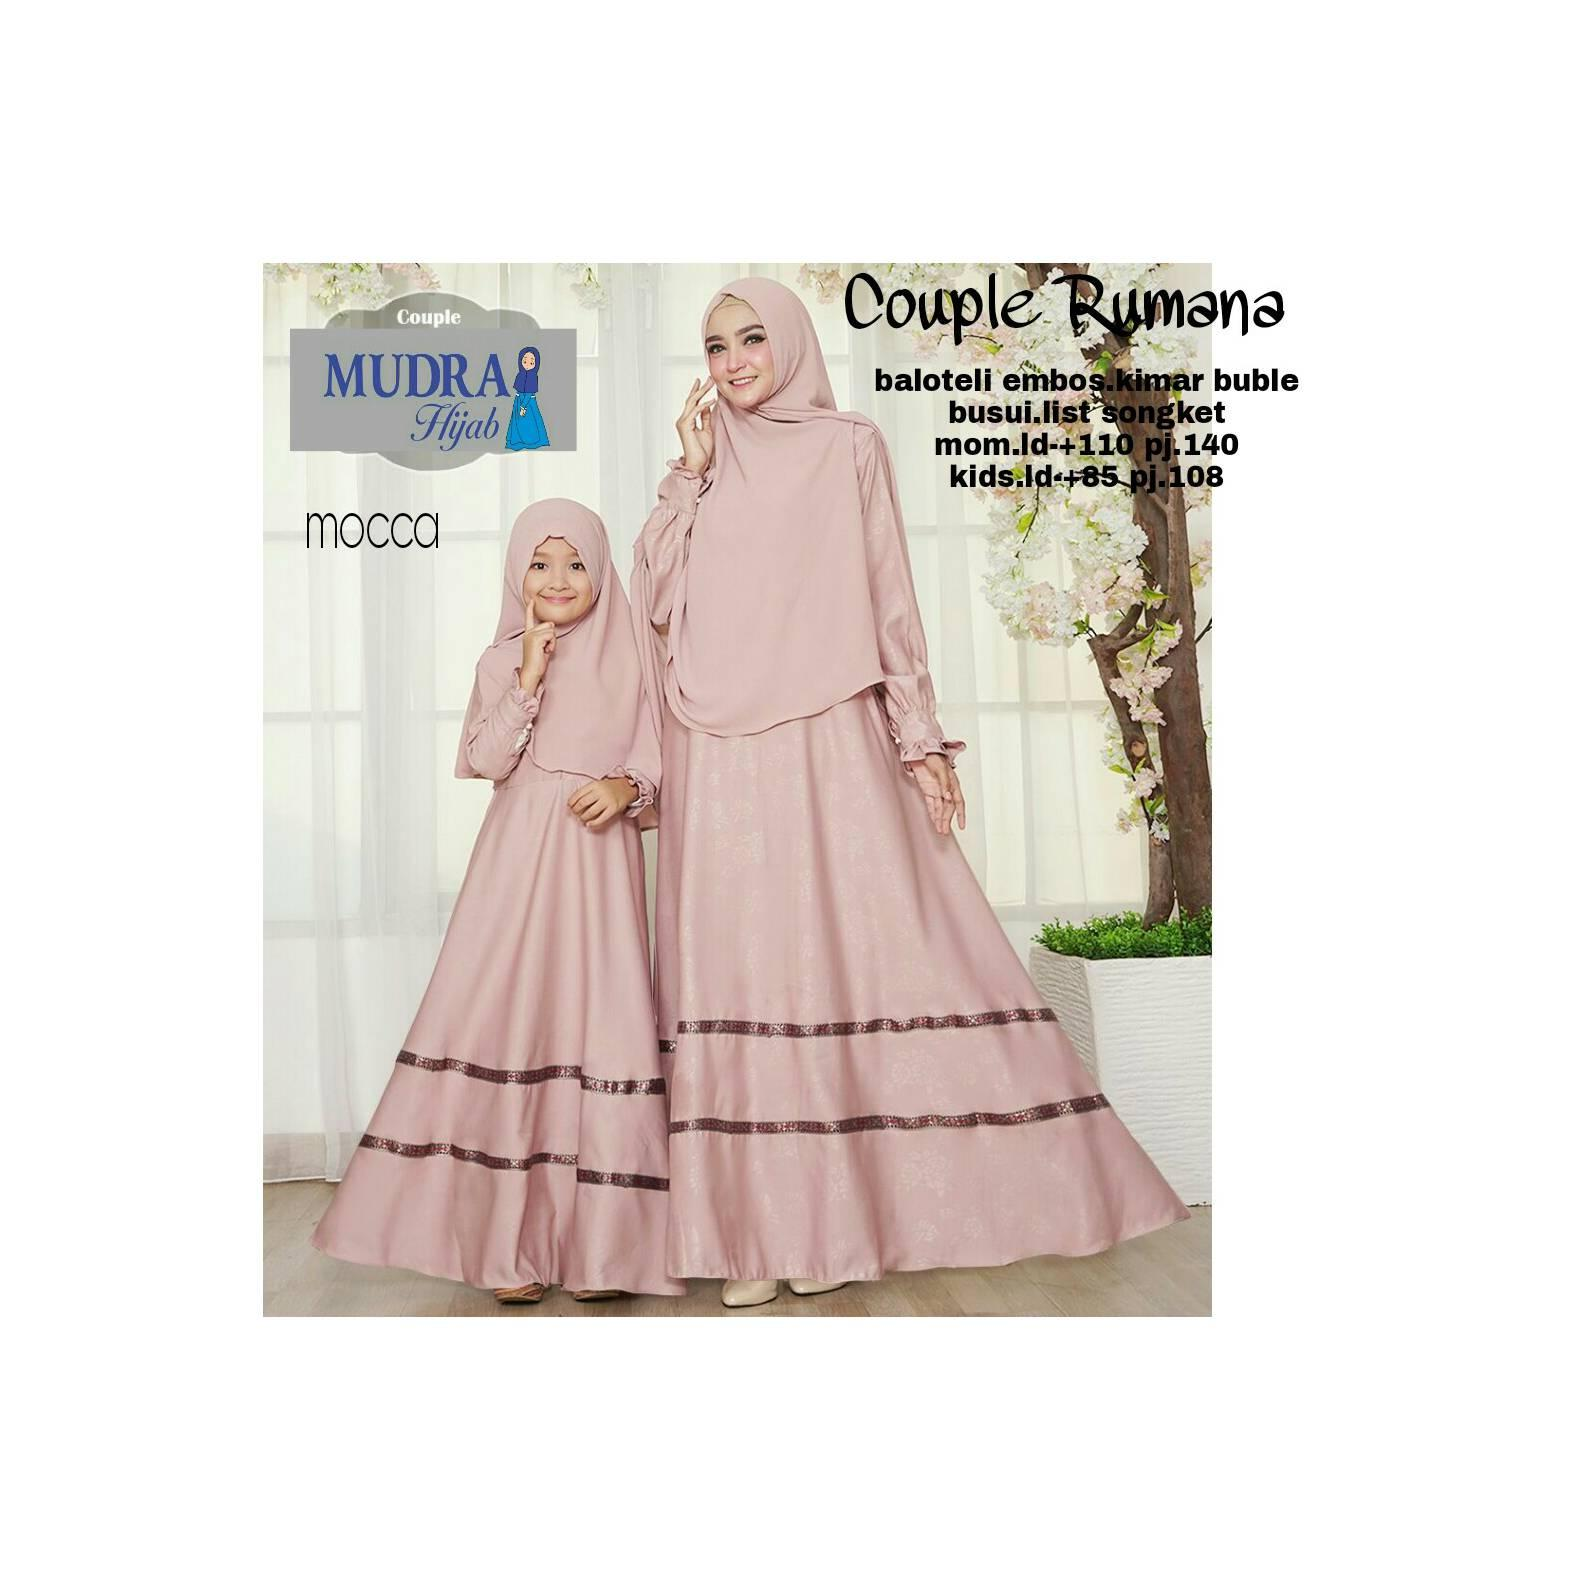 Gamis Cauple Rumana balotely embos list songket busui fashion muslim